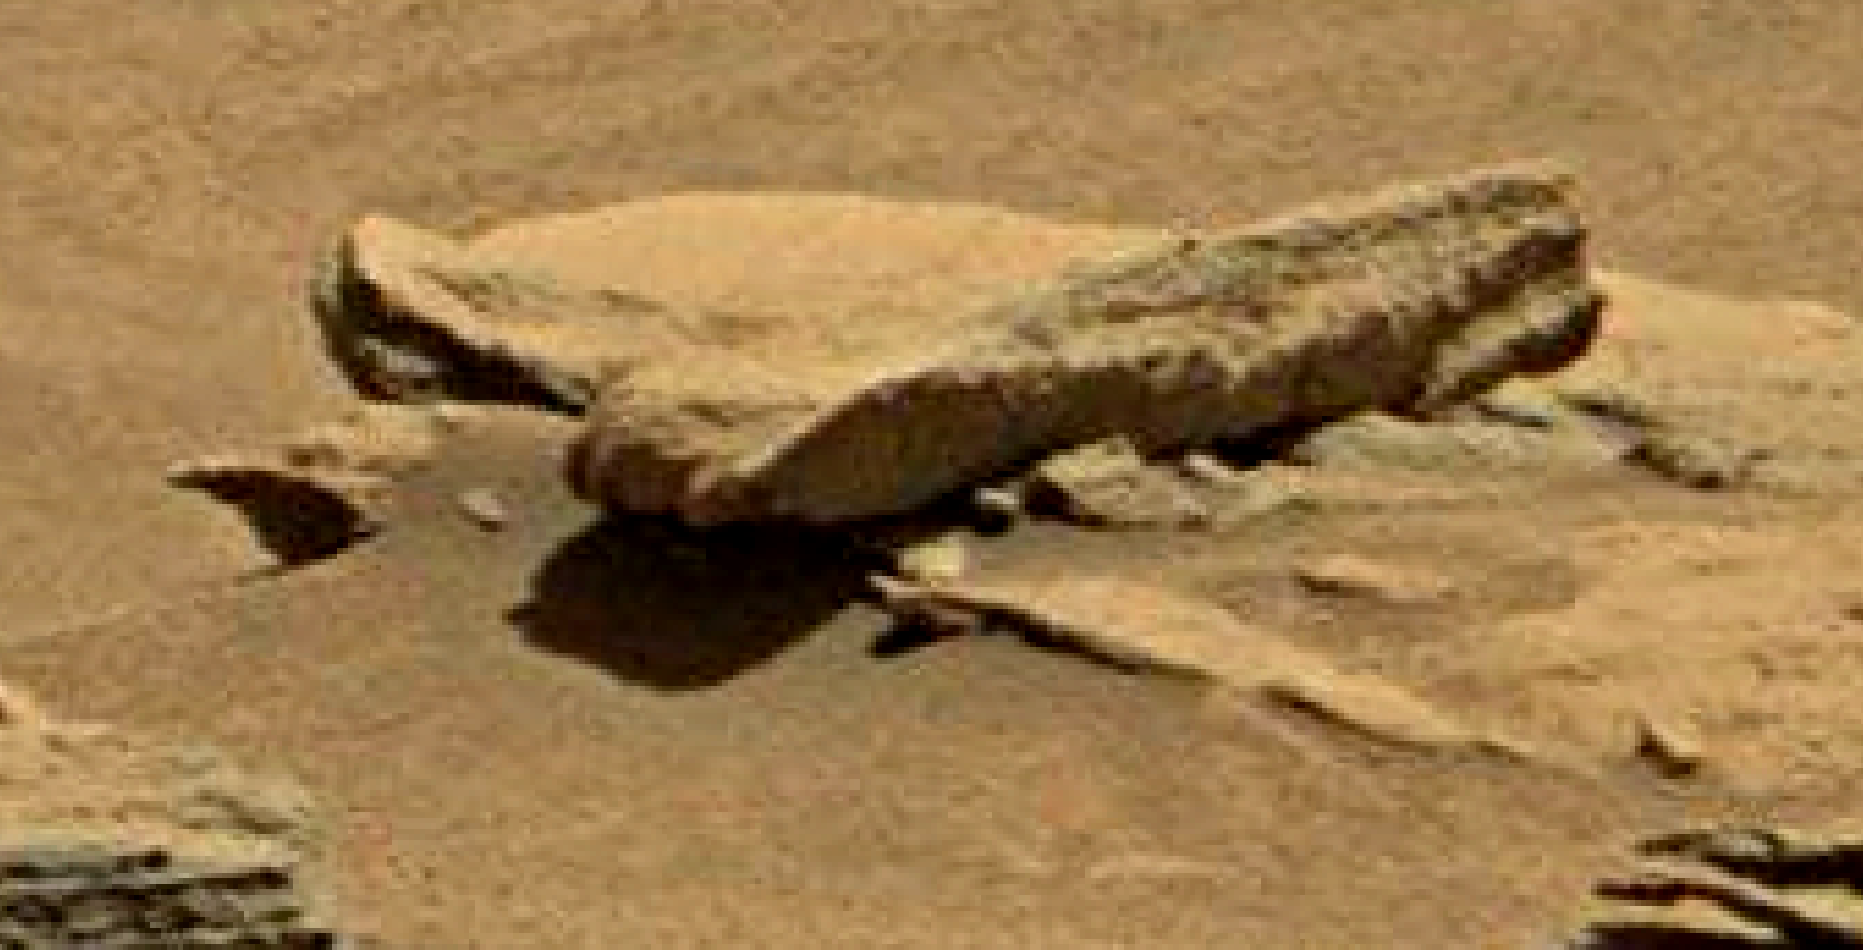 mars sol 1346 anomaly-artifacts 3 was life on mars